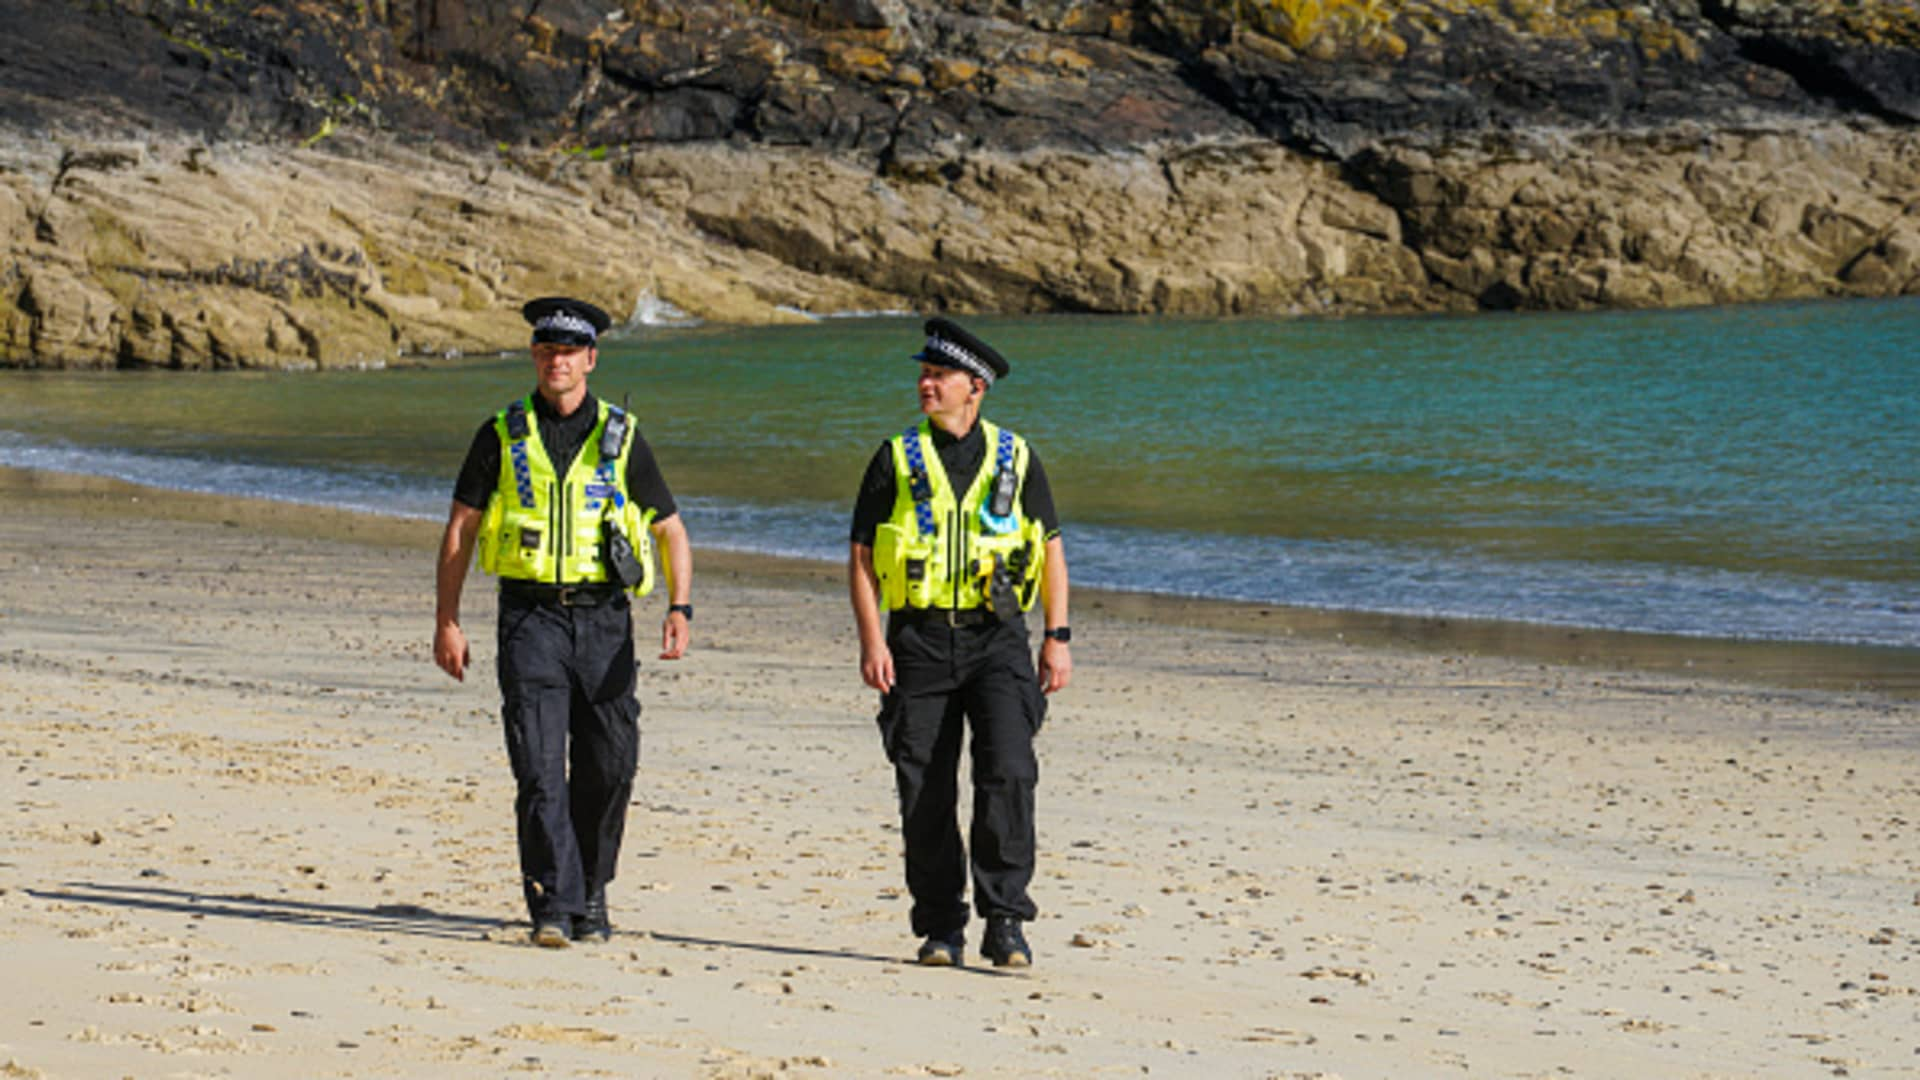 Police officers patrol on the beach in front of the Carbis Bay Hotel, host venue for the G7 Summit conferences, on June 03, 2021 in Carbis Bay, Cornwall.